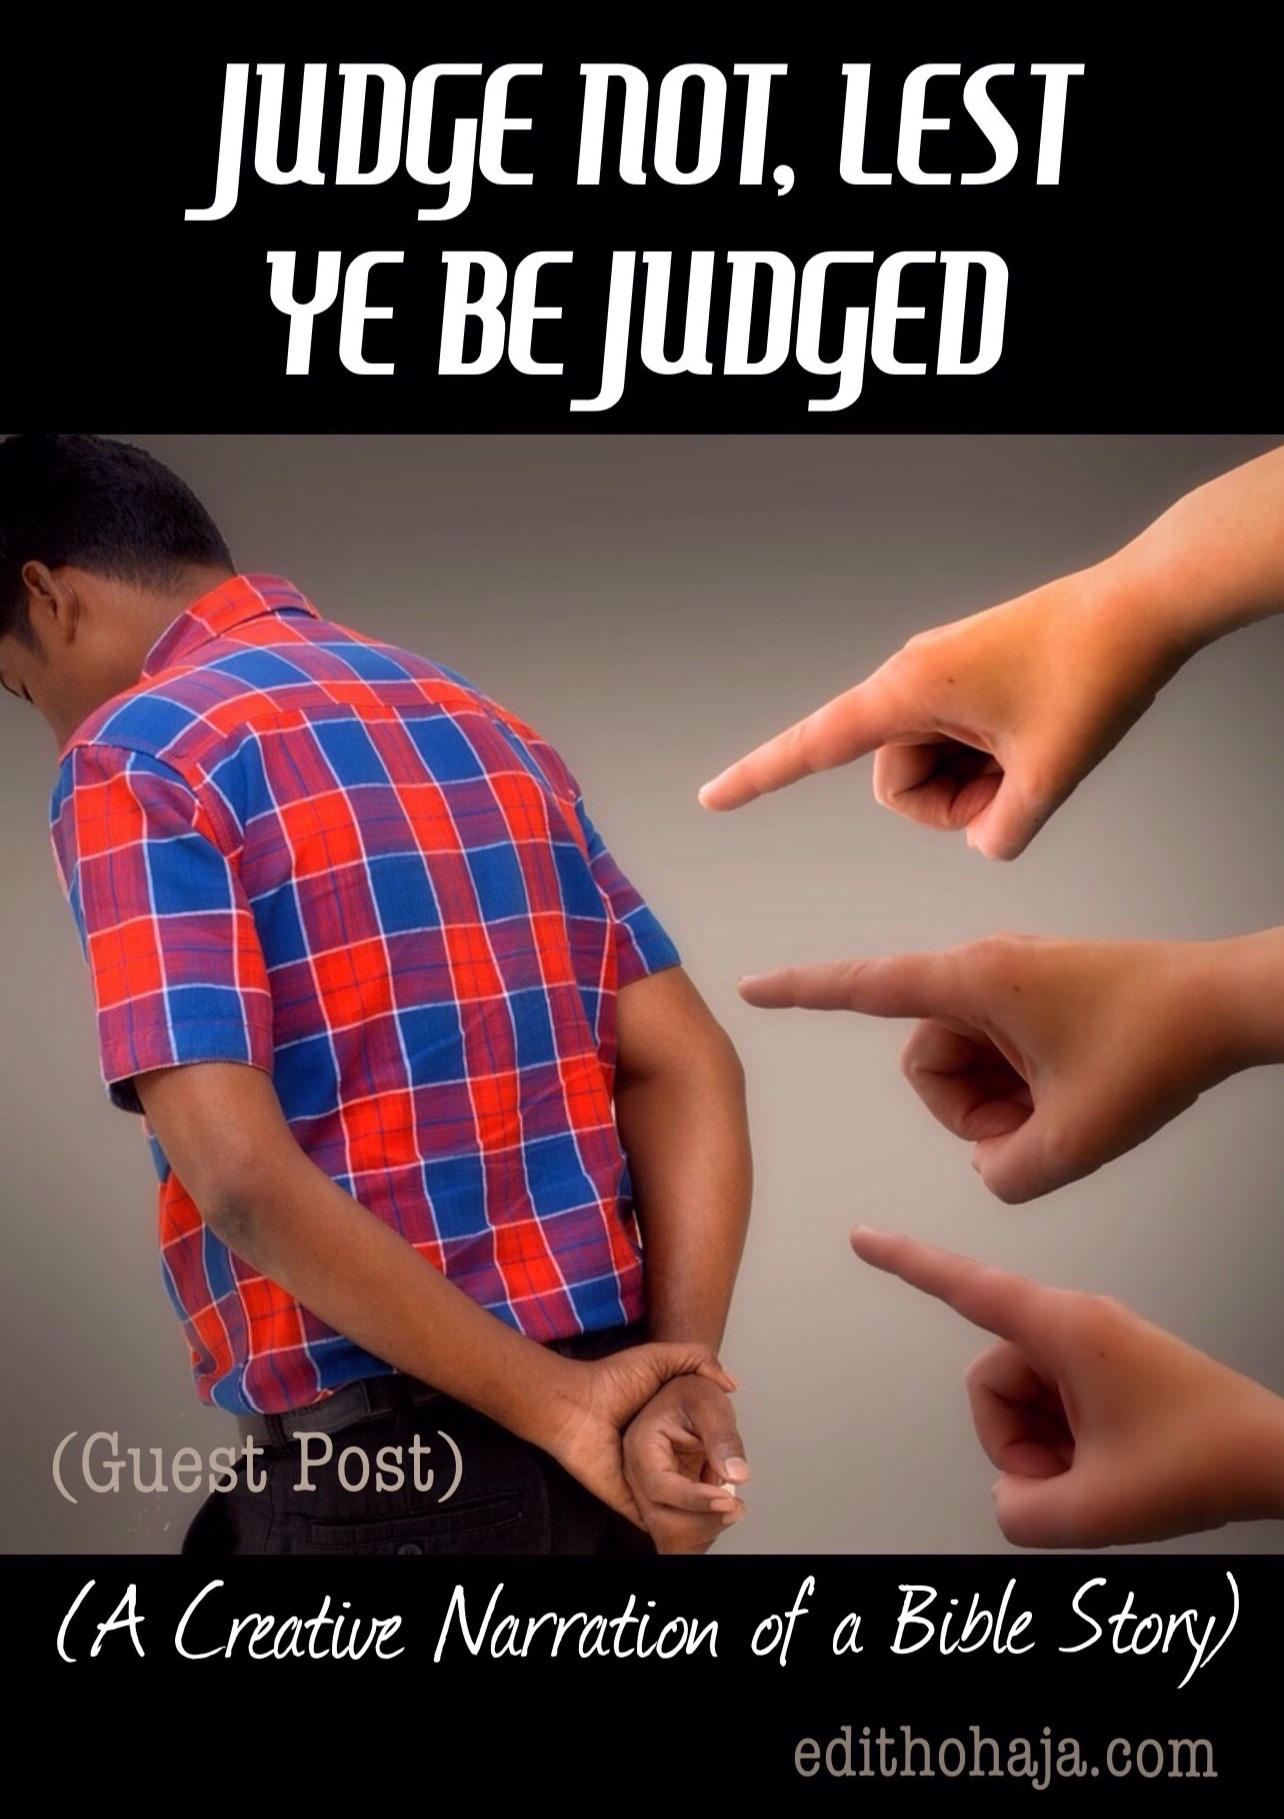 JUDGE NOT, LEST YE BE JUDGED by JOLEISA